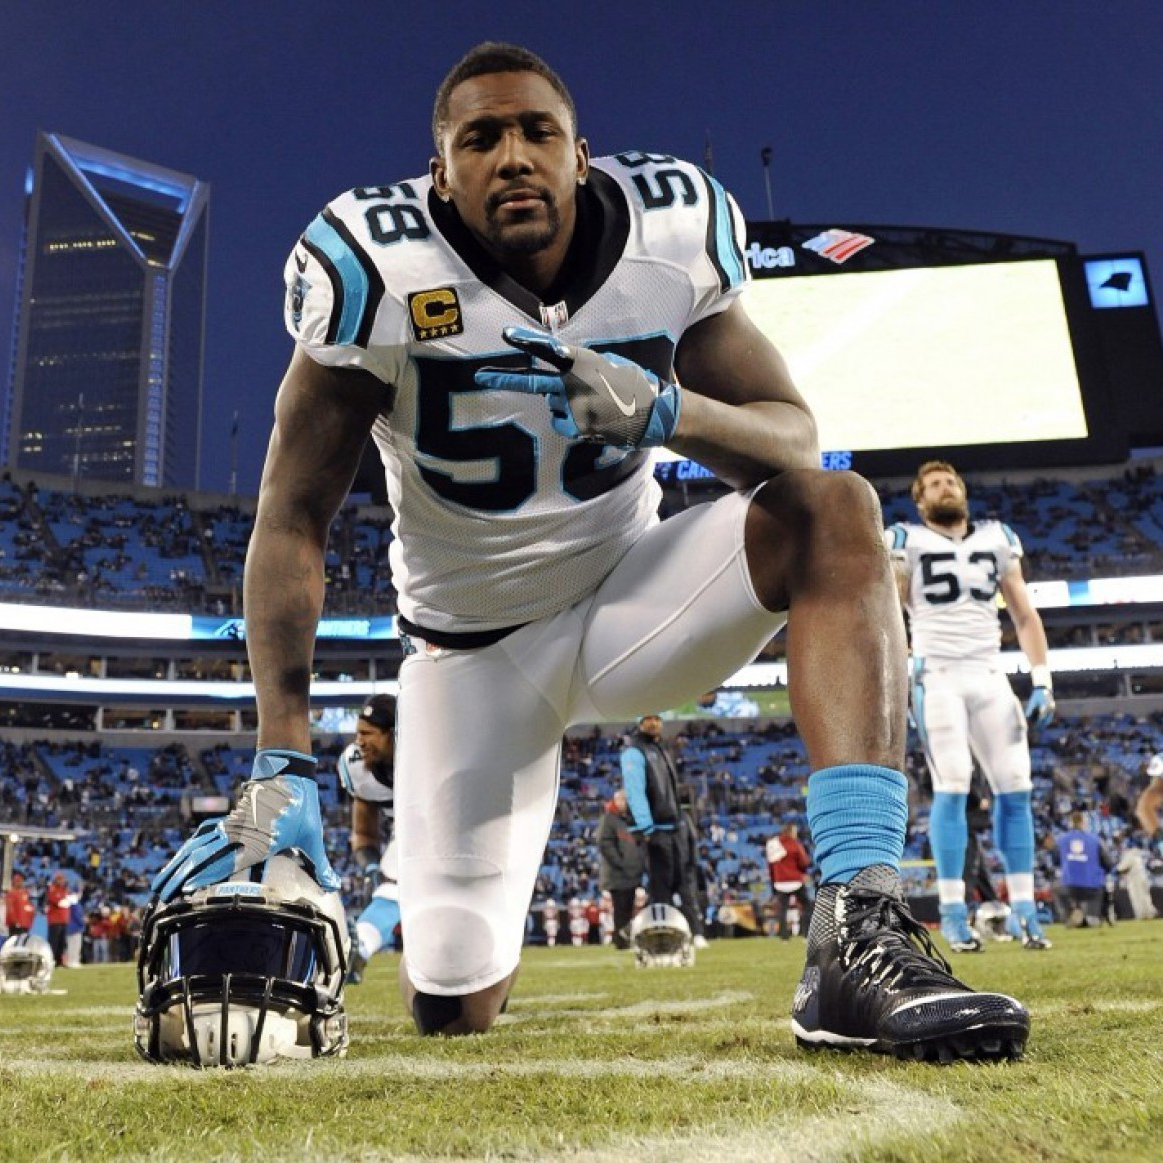 Panthers Linebacker May Play Super Bowl in 3D Printed Brace